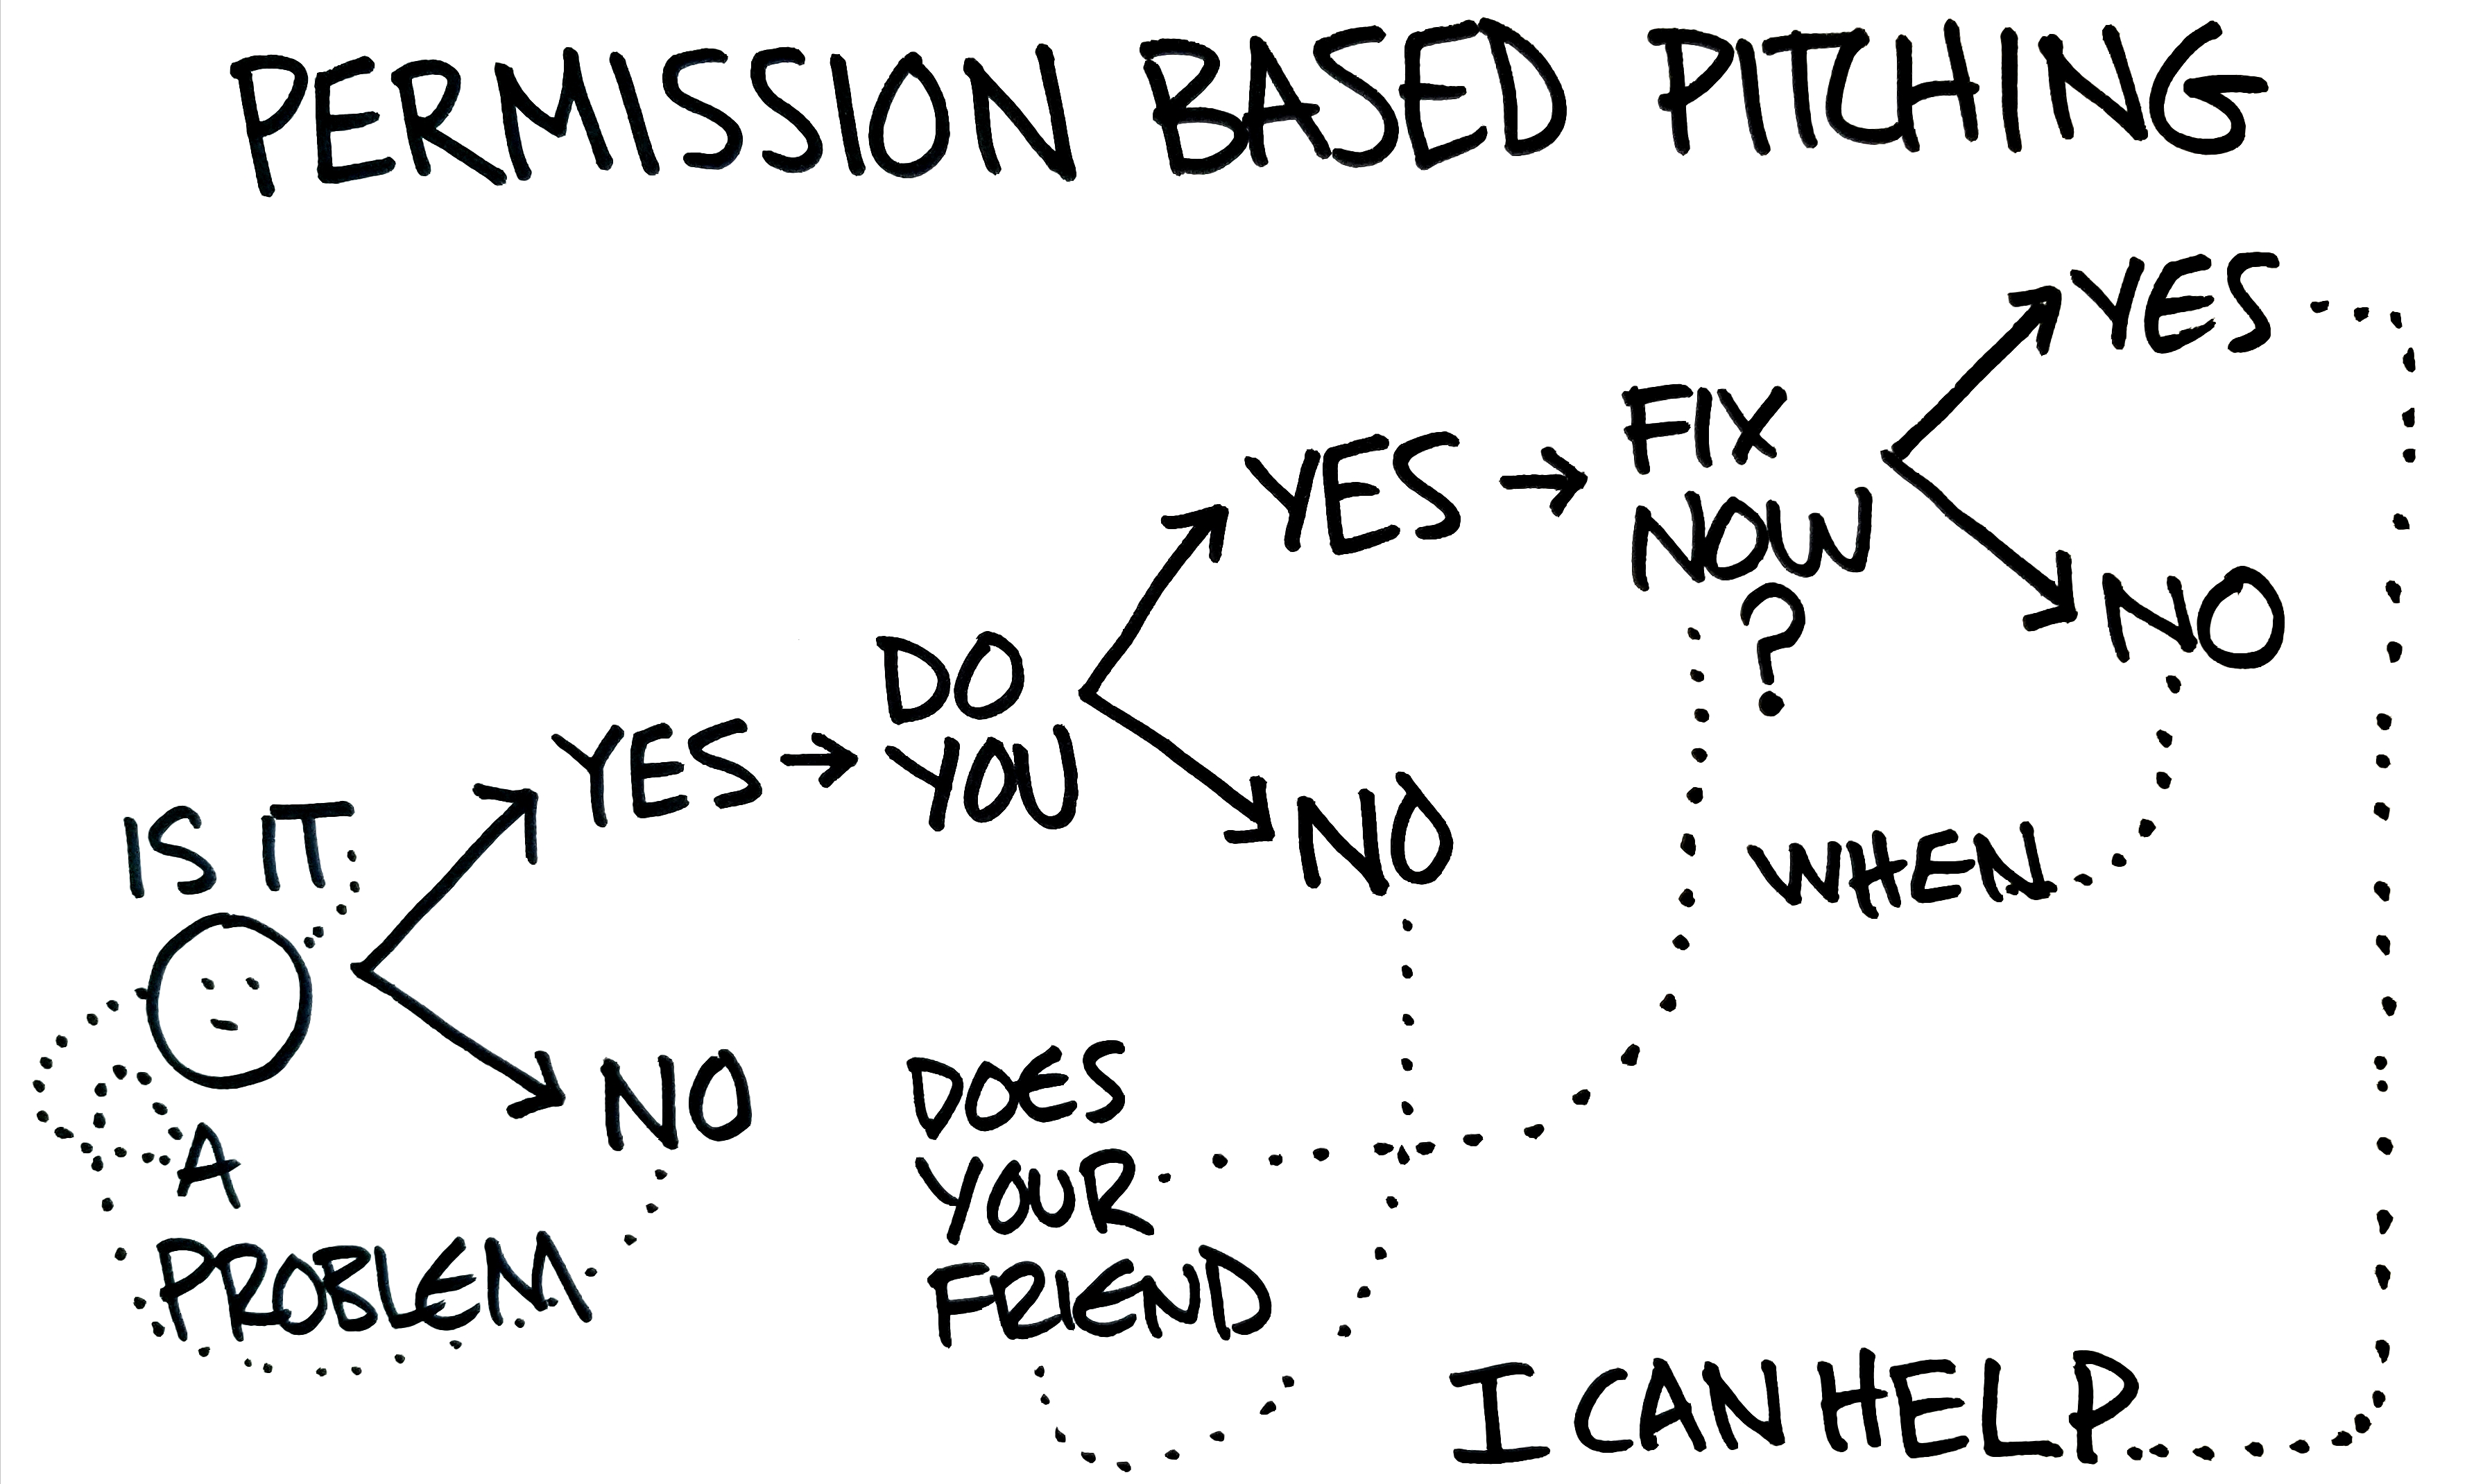 permission based pitching - Ryan Foland